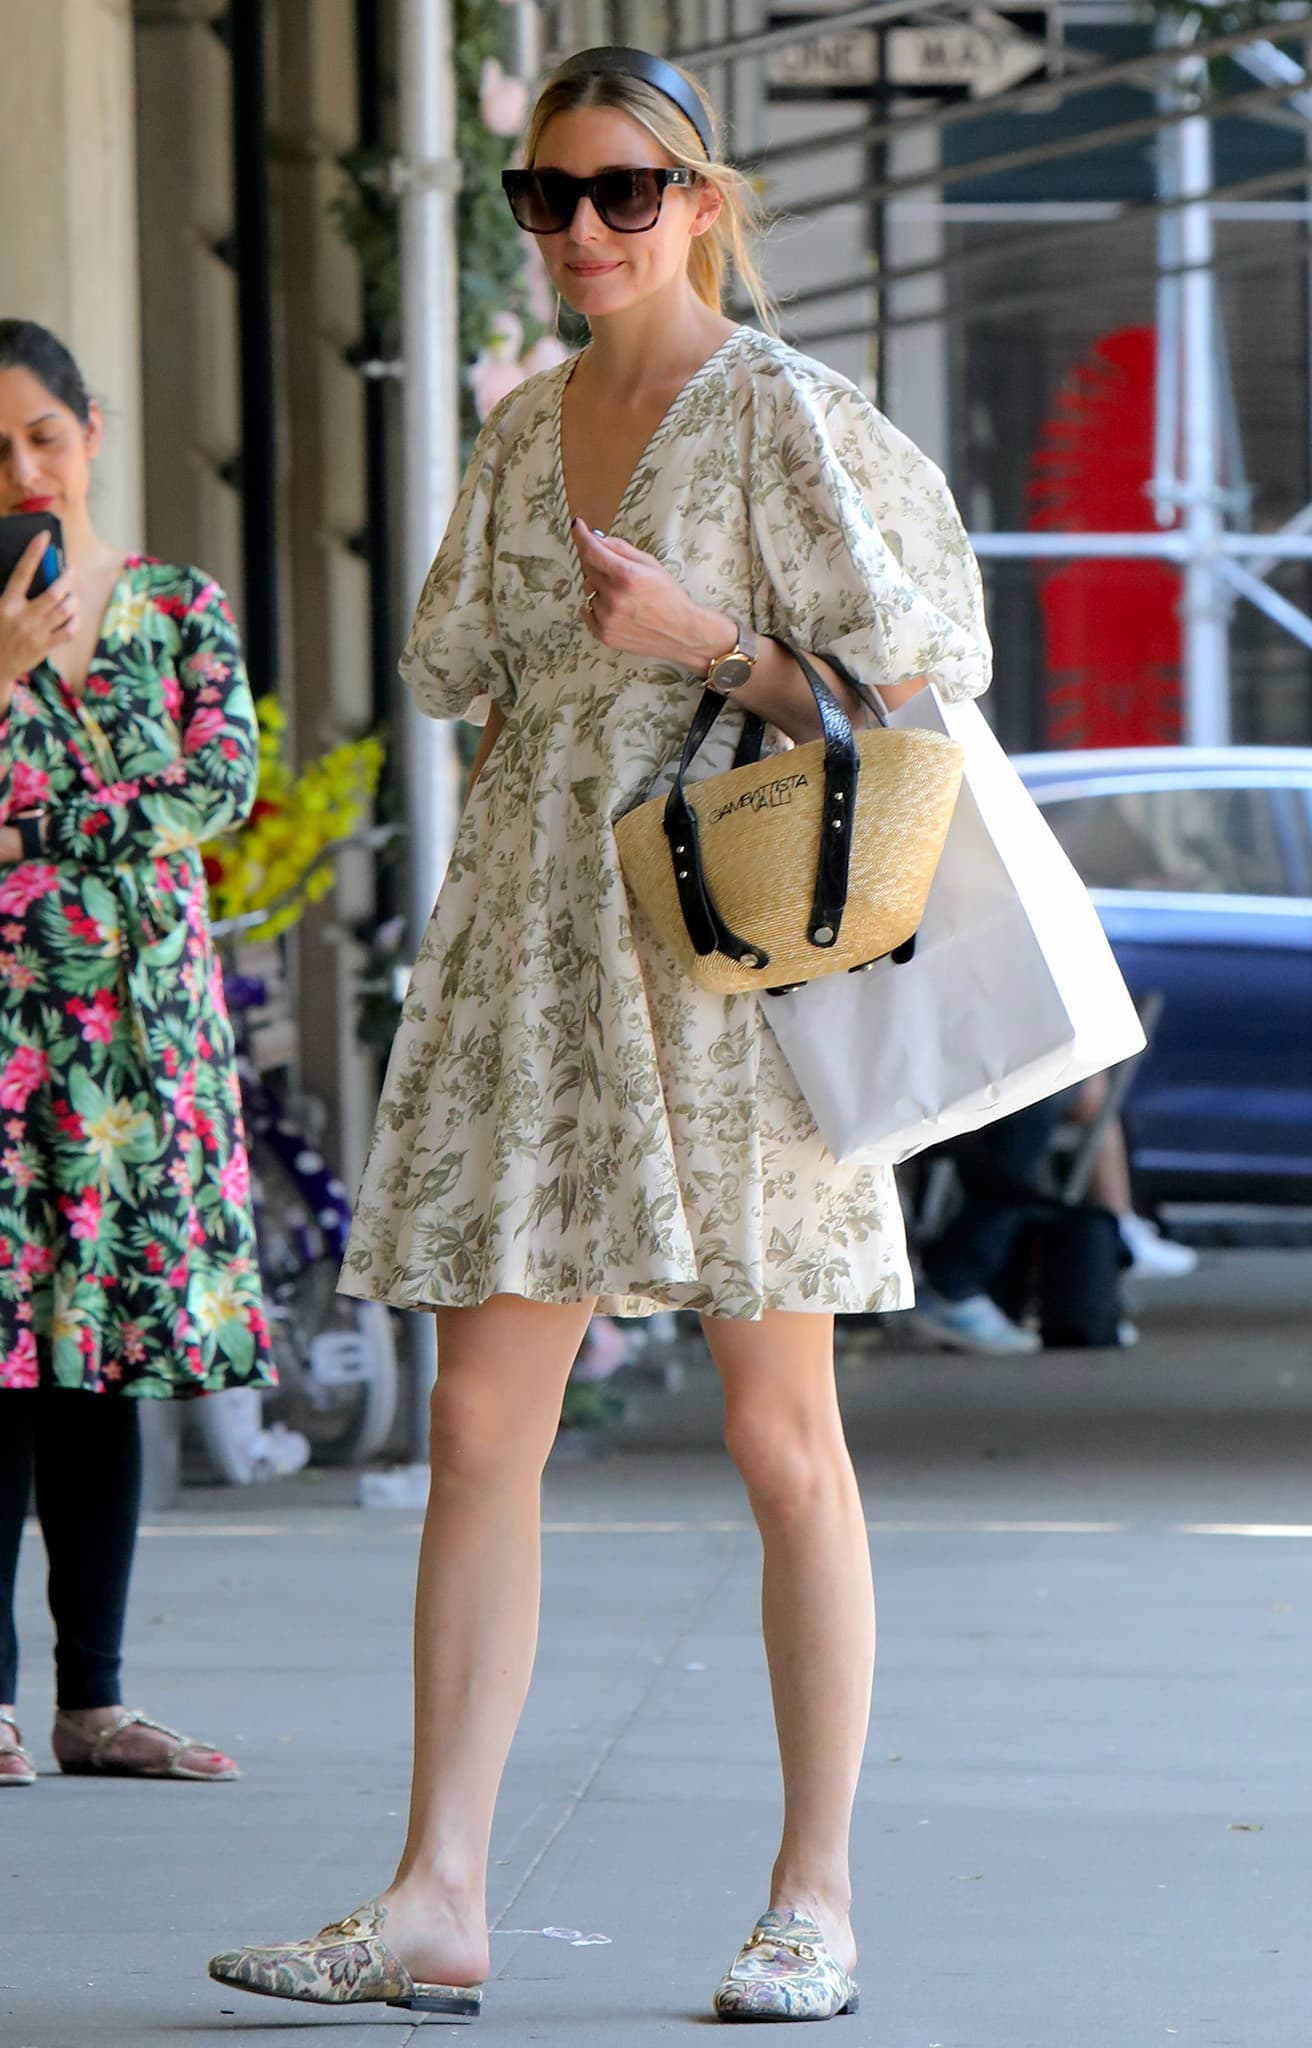 Olivia Palermo looks chic in mini dress and mules while running errands in Dumbo on May 28, 2021